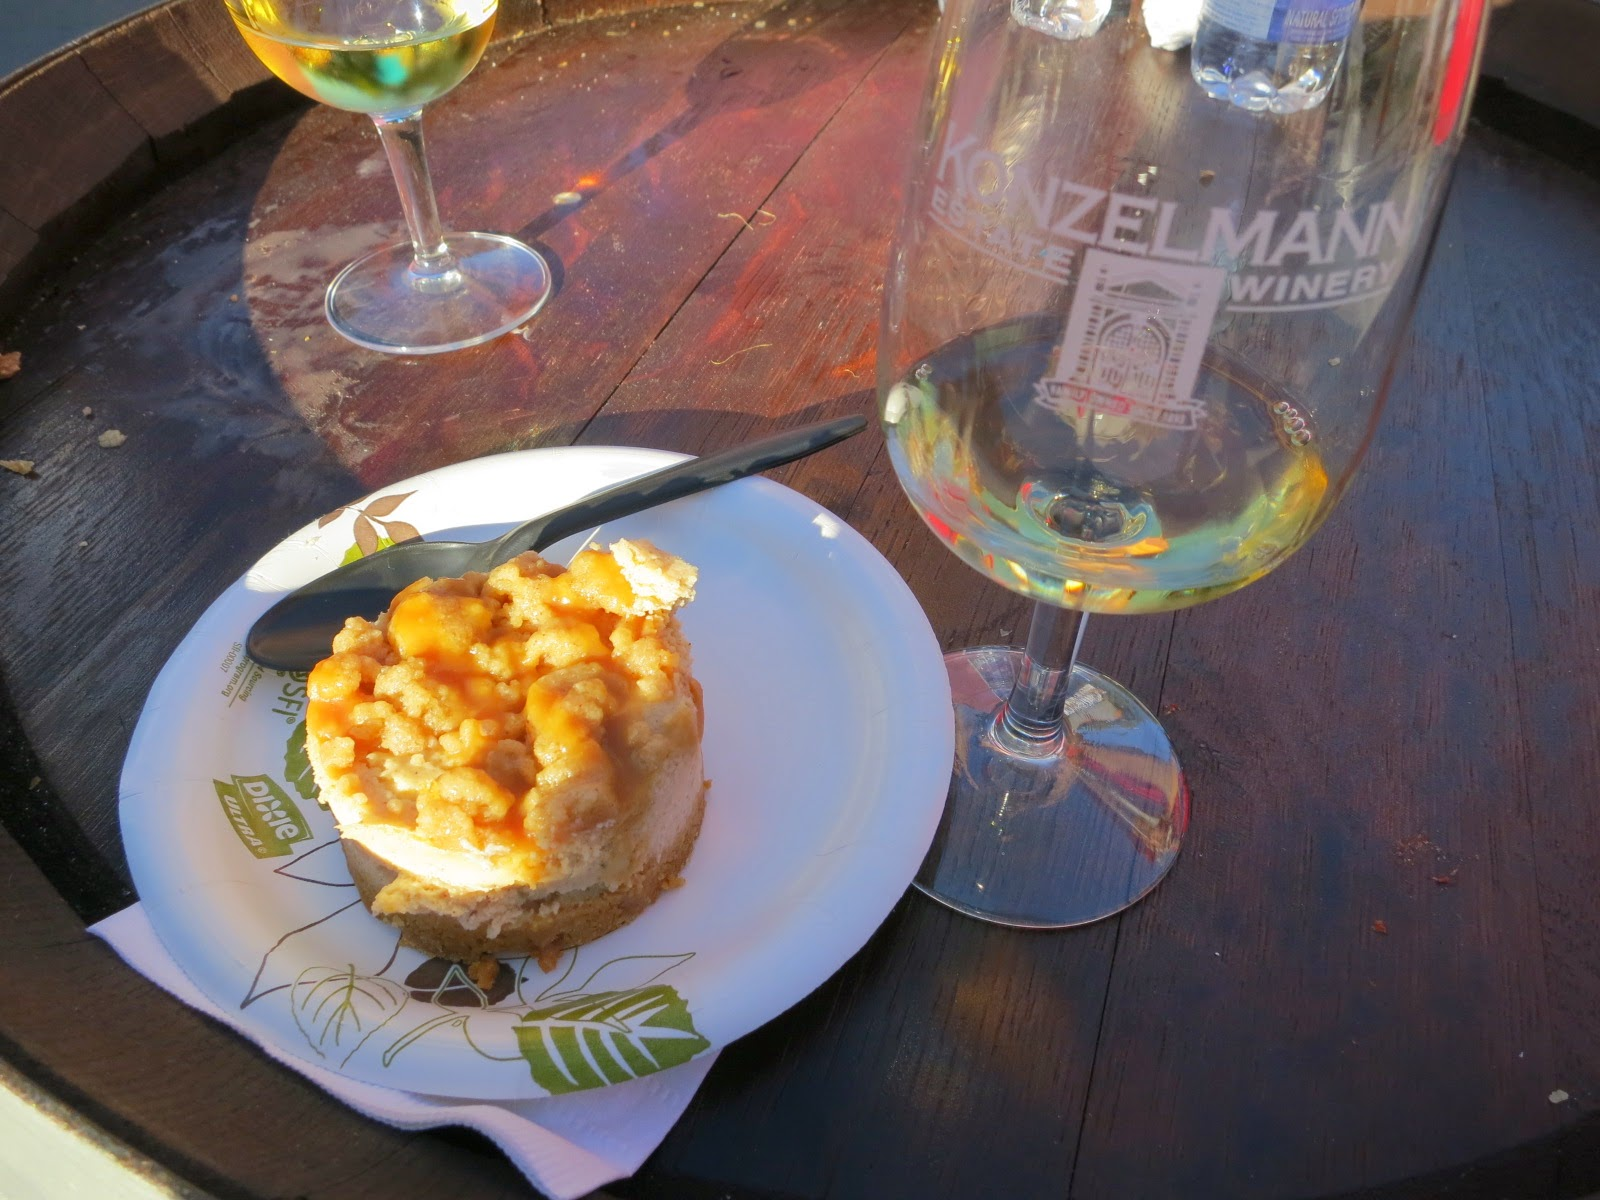 Creamy Apple-Spiced Cheesecake and 2013 Konzelmann Special Select Late Harvest Vidal